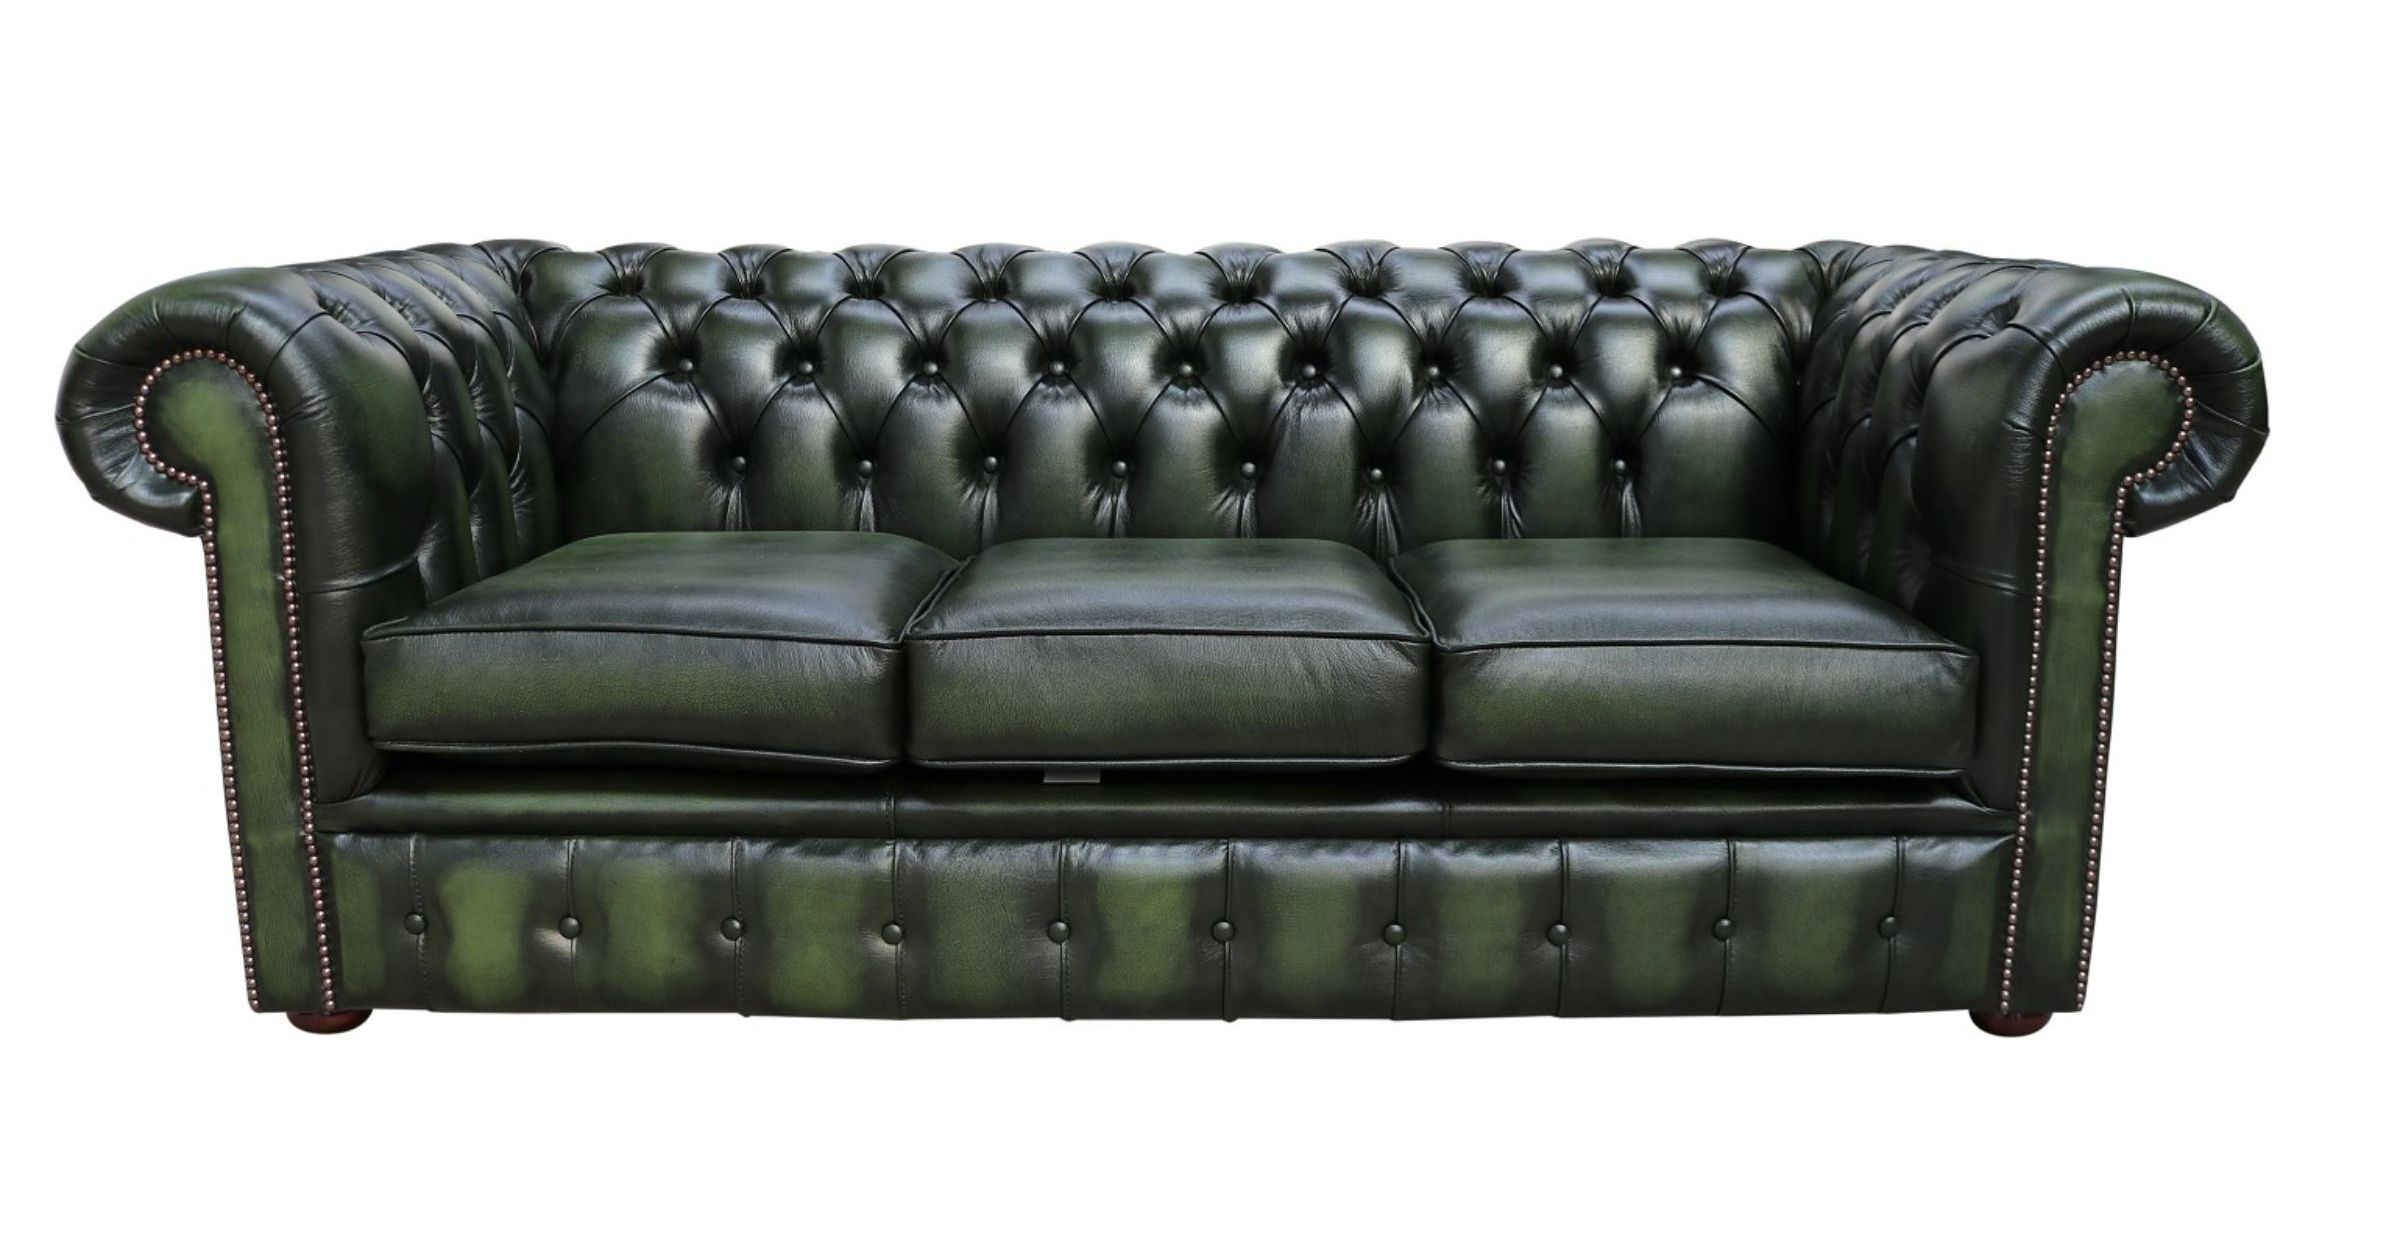 Antique Green Leather Chesterfield 3 Seater sofa | DesignerSofas4U